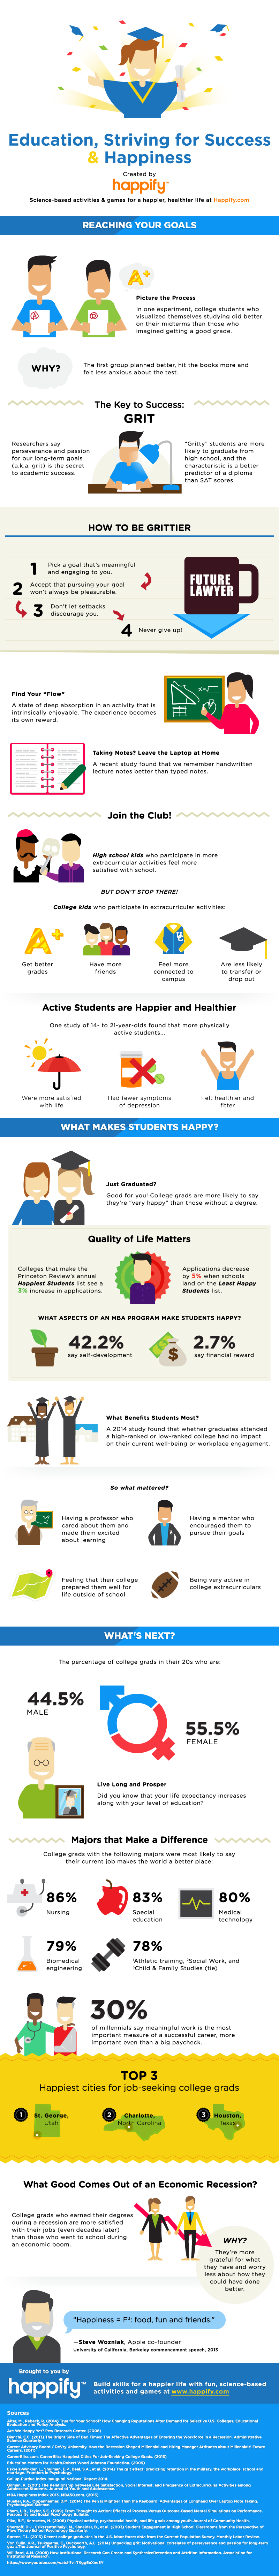 Happify - Infographic - Graduation and Education